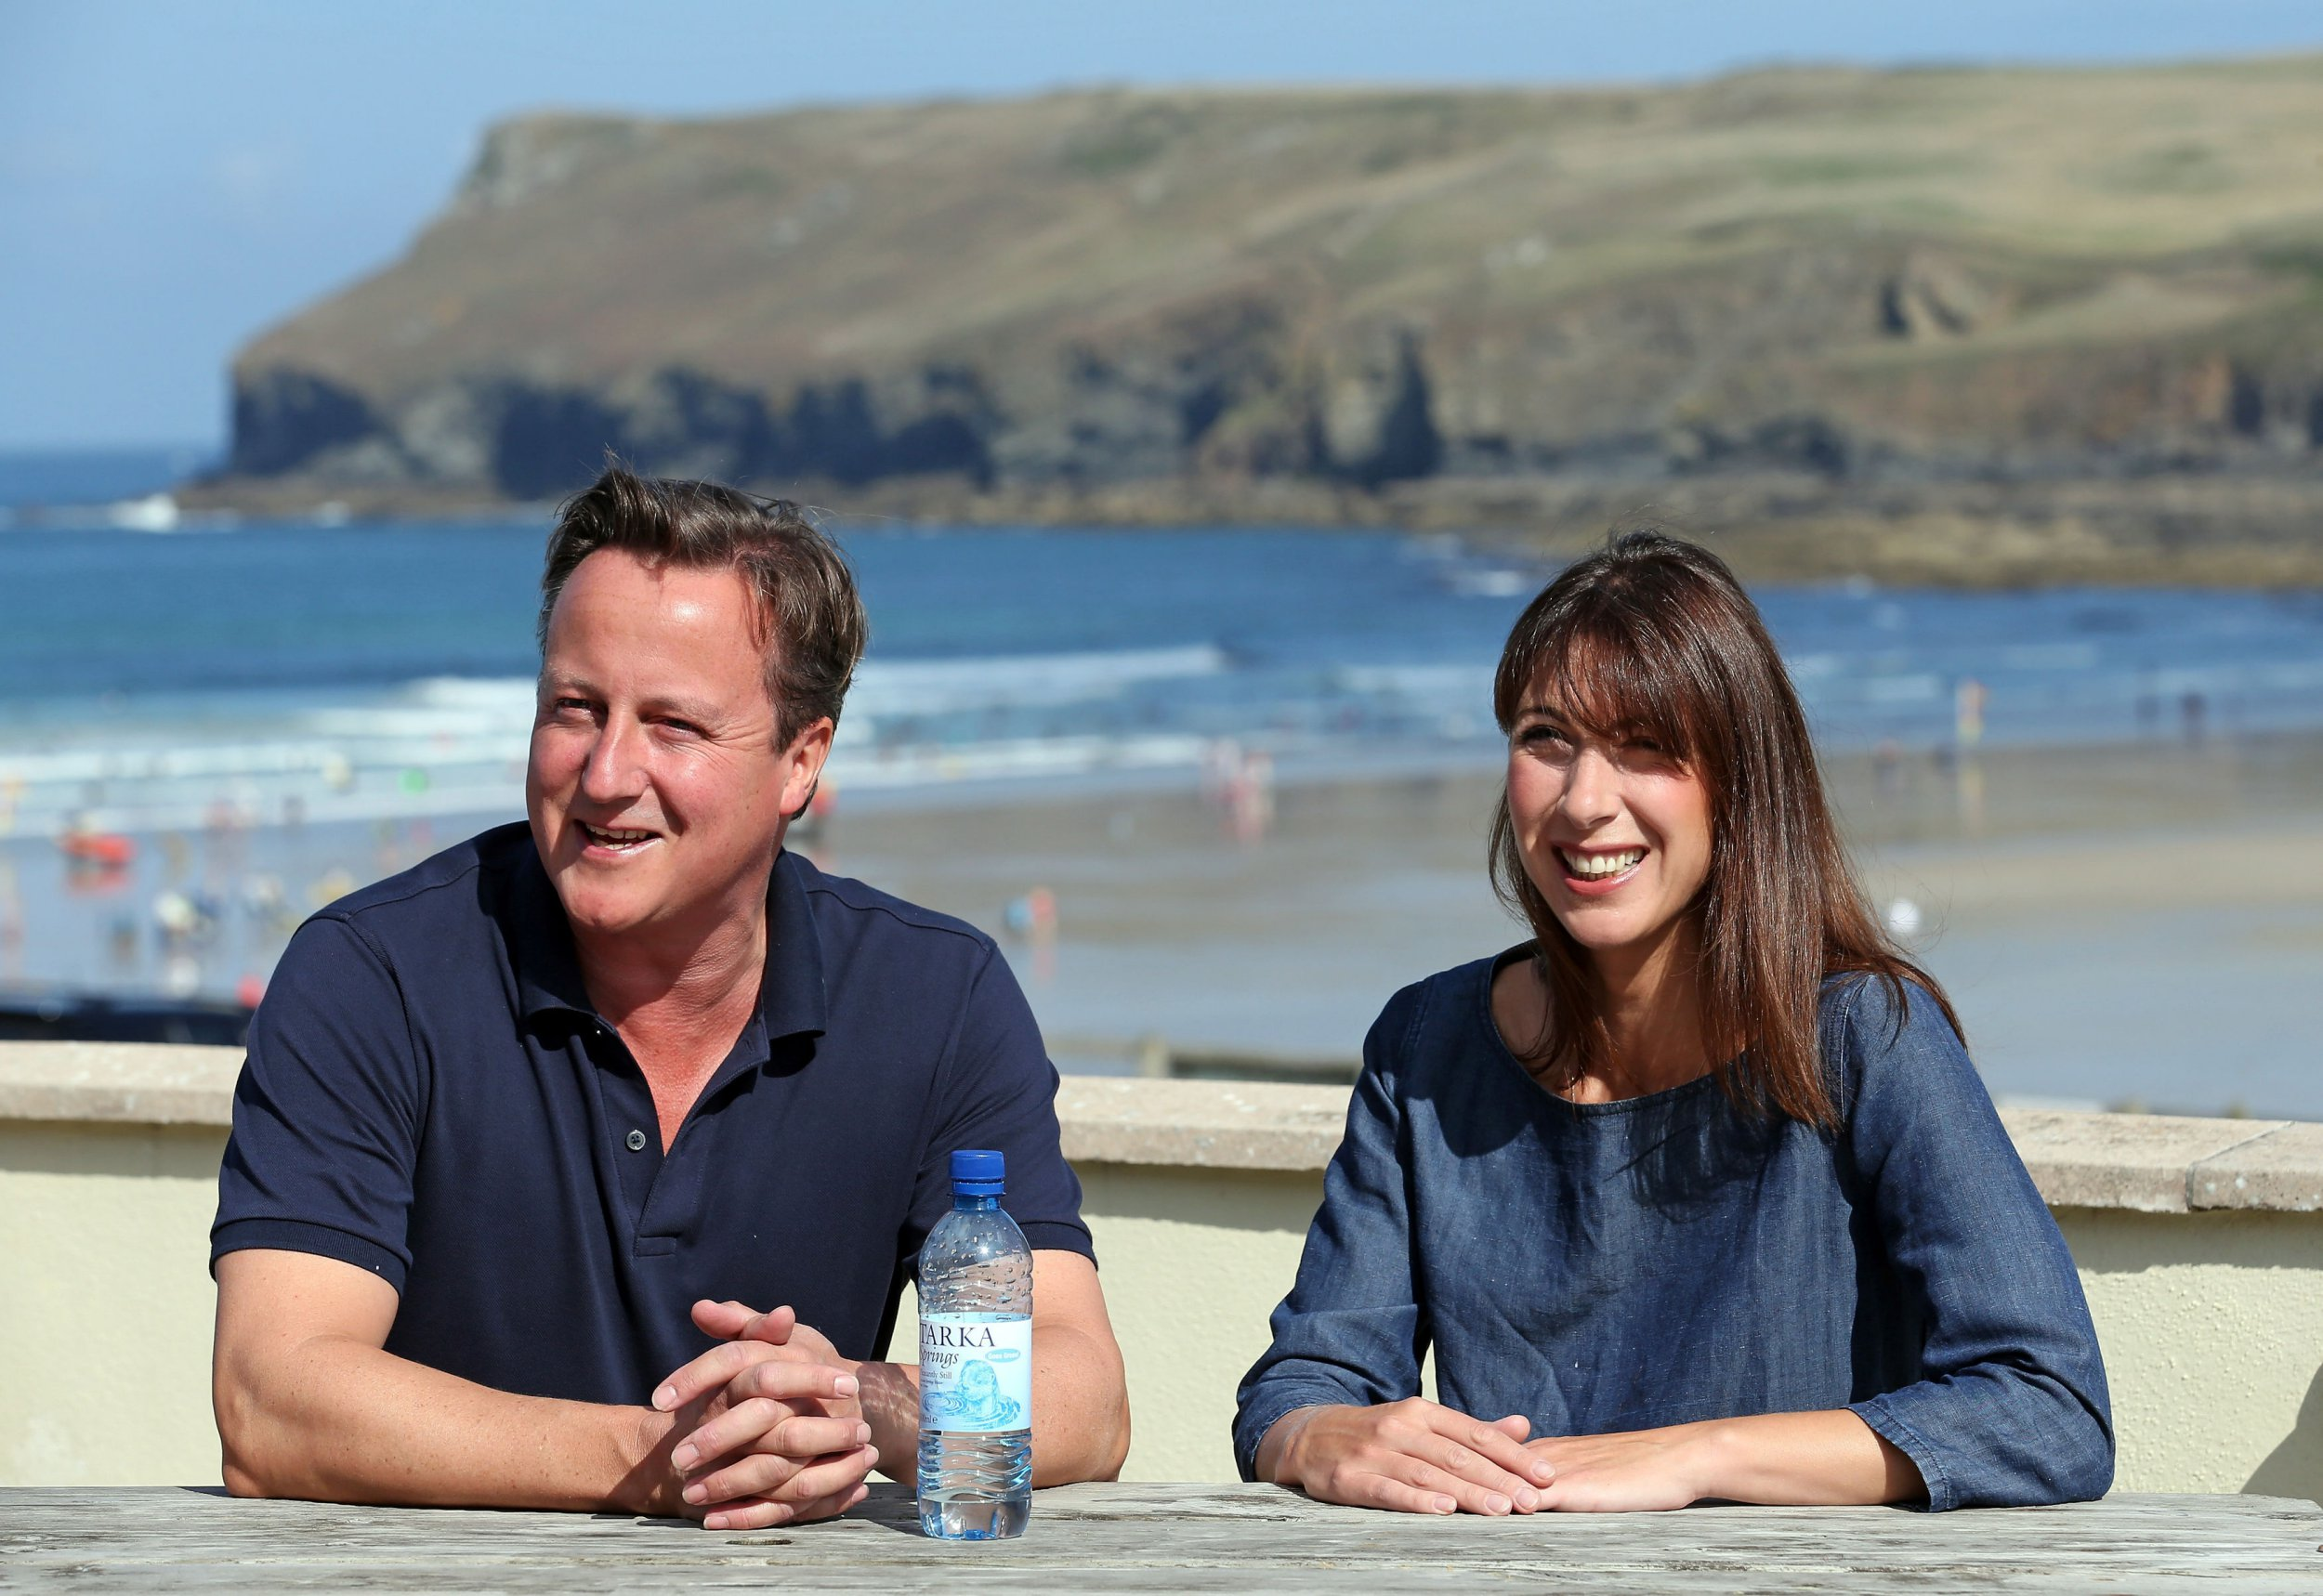 David Cameron could be getting his very own TV show about life after Number 10